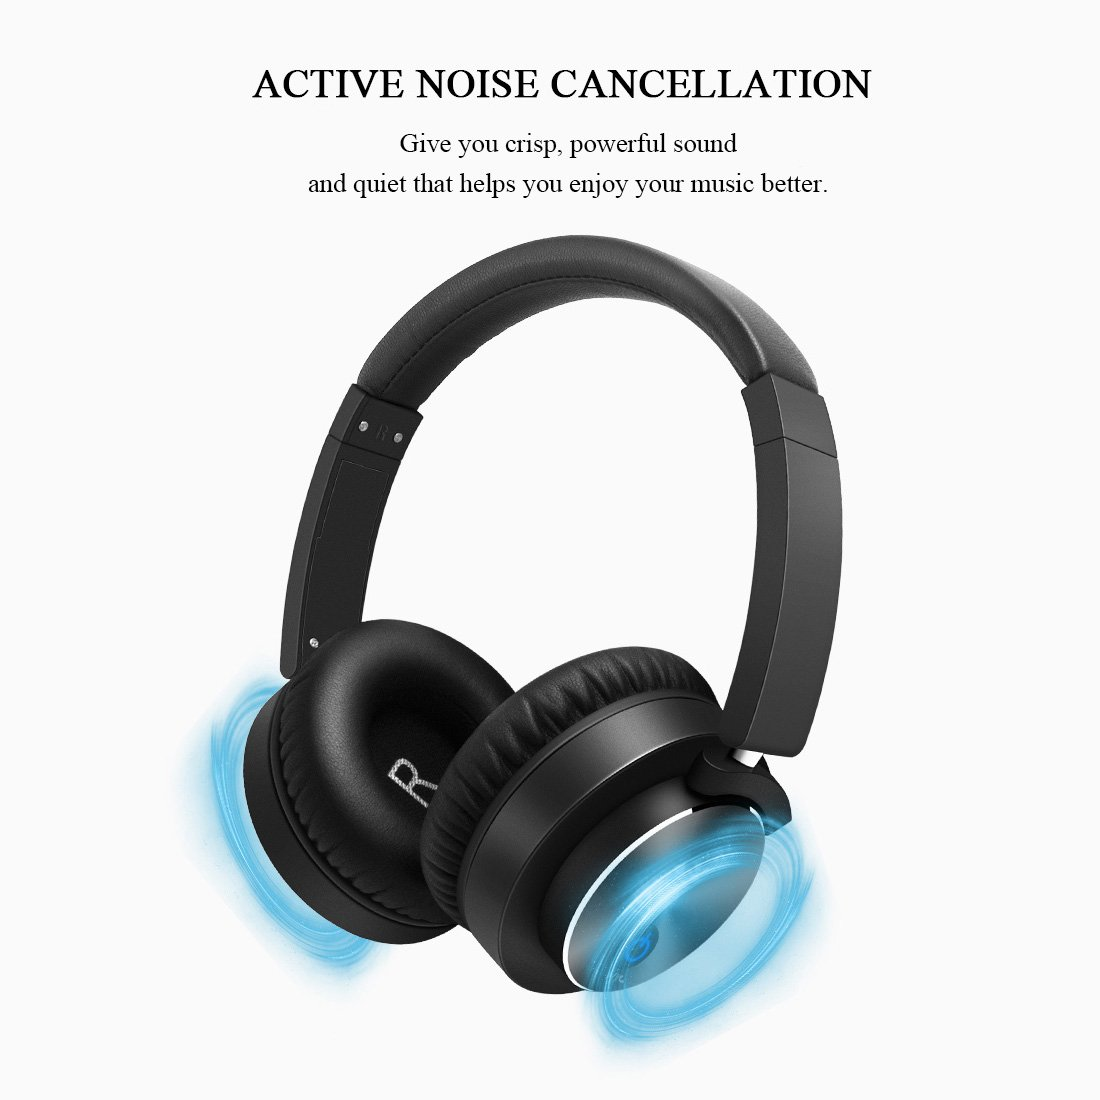 Amazon.com: Active Noise Cancelling Headphones Bluetooth Wireless Headsets Built in Microphone HiFi Stereo Over Ear Portable Foldable Comfortable Leather ...